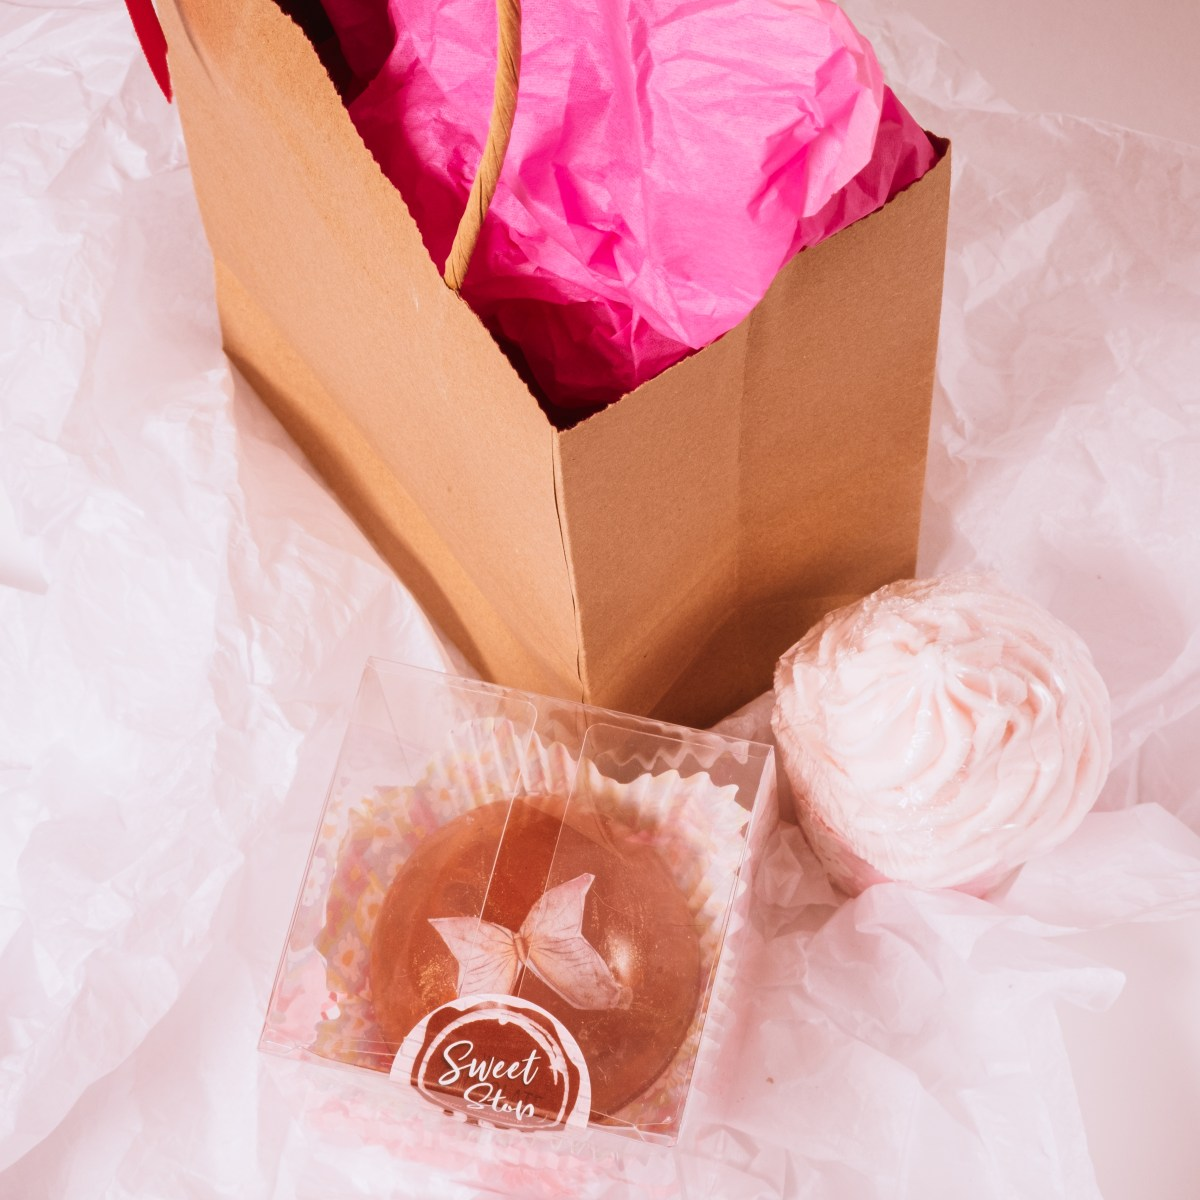 The Bomb Birthday Bundle by Canada in a Box 100% Canadian Subscription & Gift Boxes